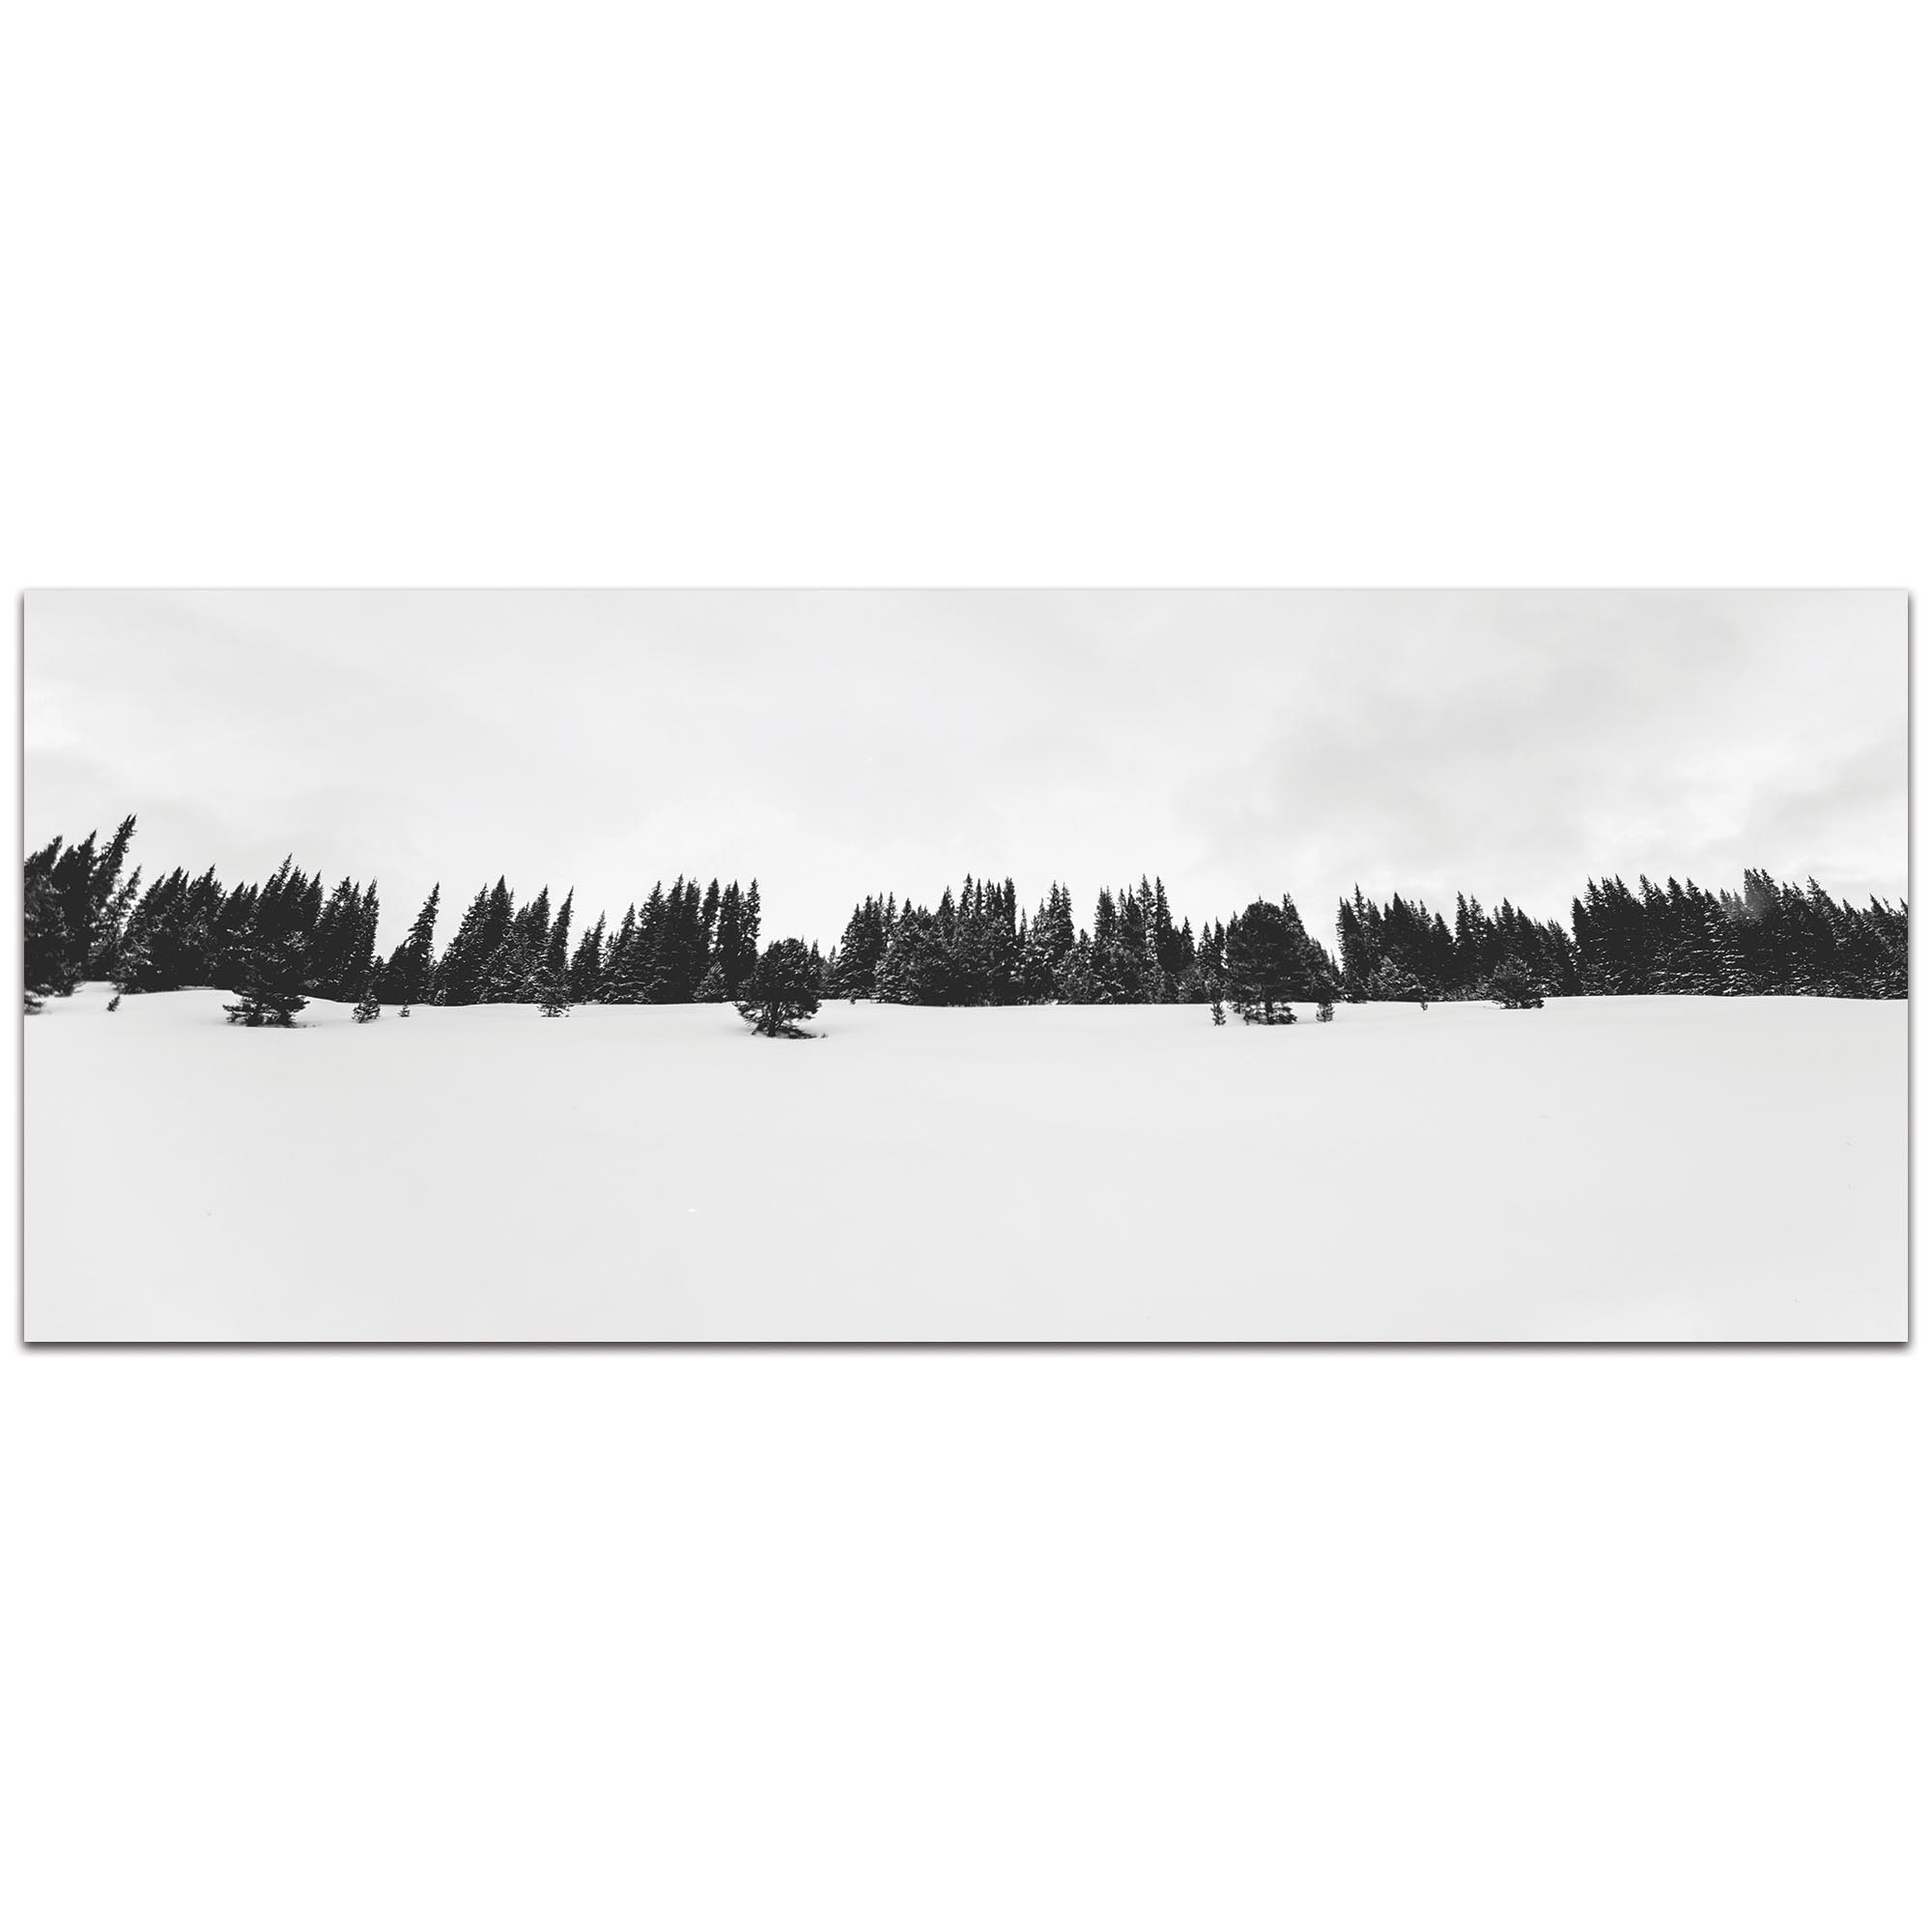 Landscape Photography 'Life Line' - Winter Trees Art on Metal or Plexiglass